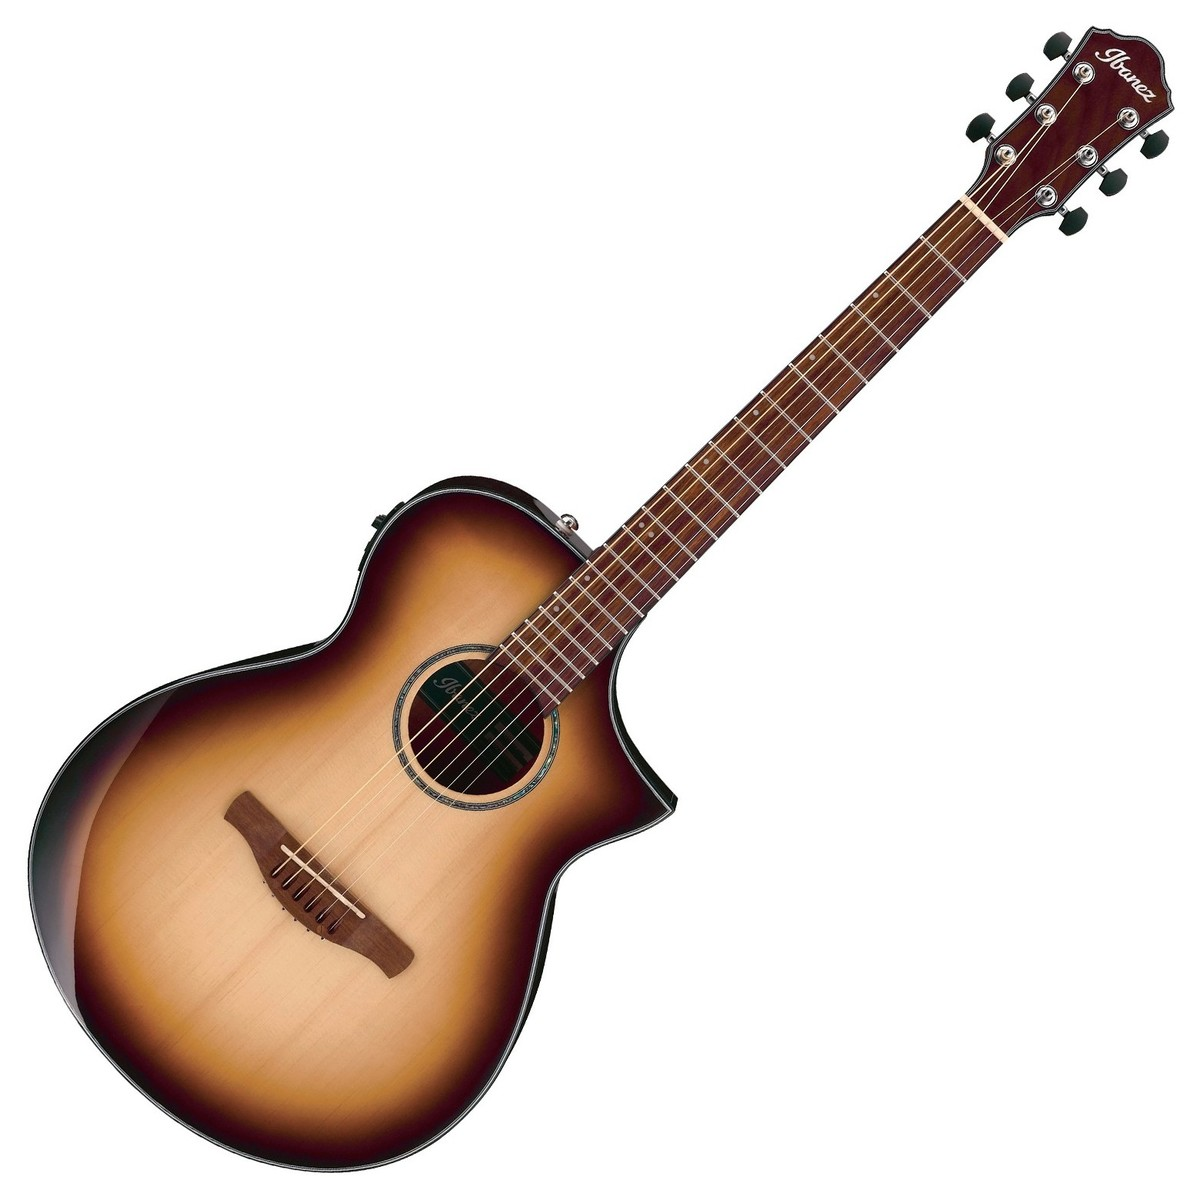 ibanez aewc300 electro acoustic 2018 natural brown burst at gear4music. Black Bedroom Furniture Sets. Home Design Ideas